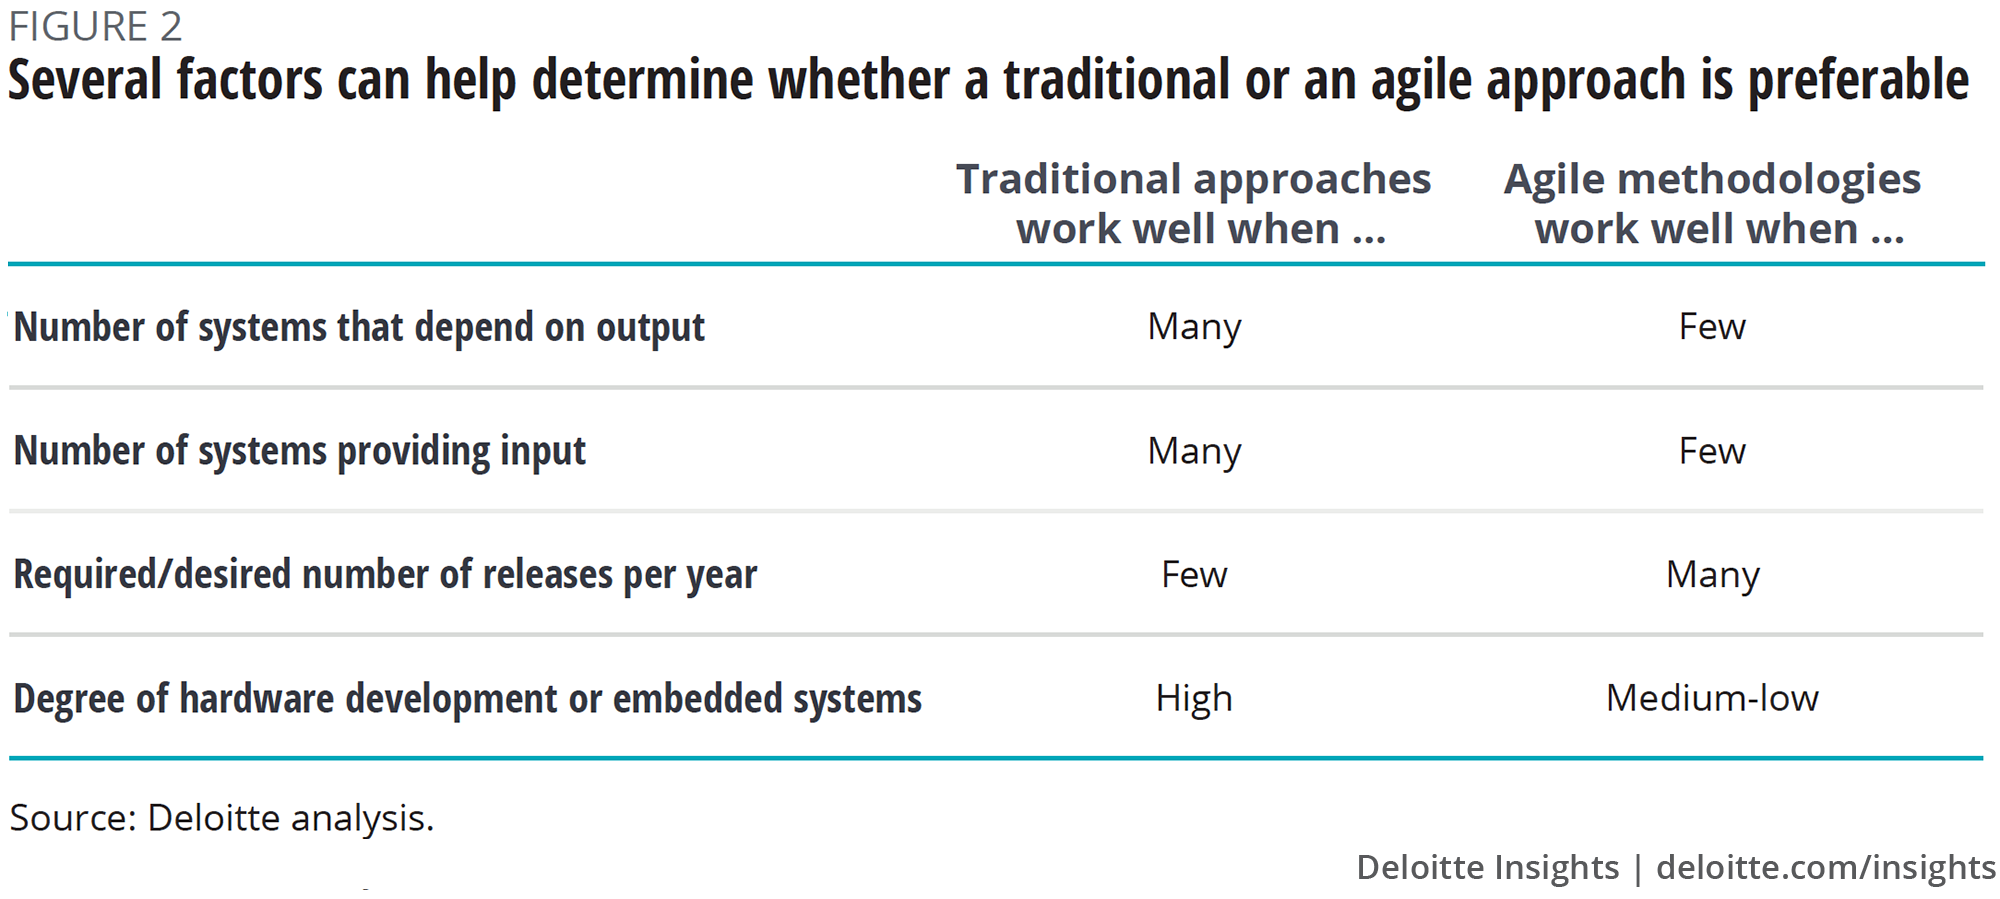 Several factors can help determine whether a traditional or an agile approach is preferable